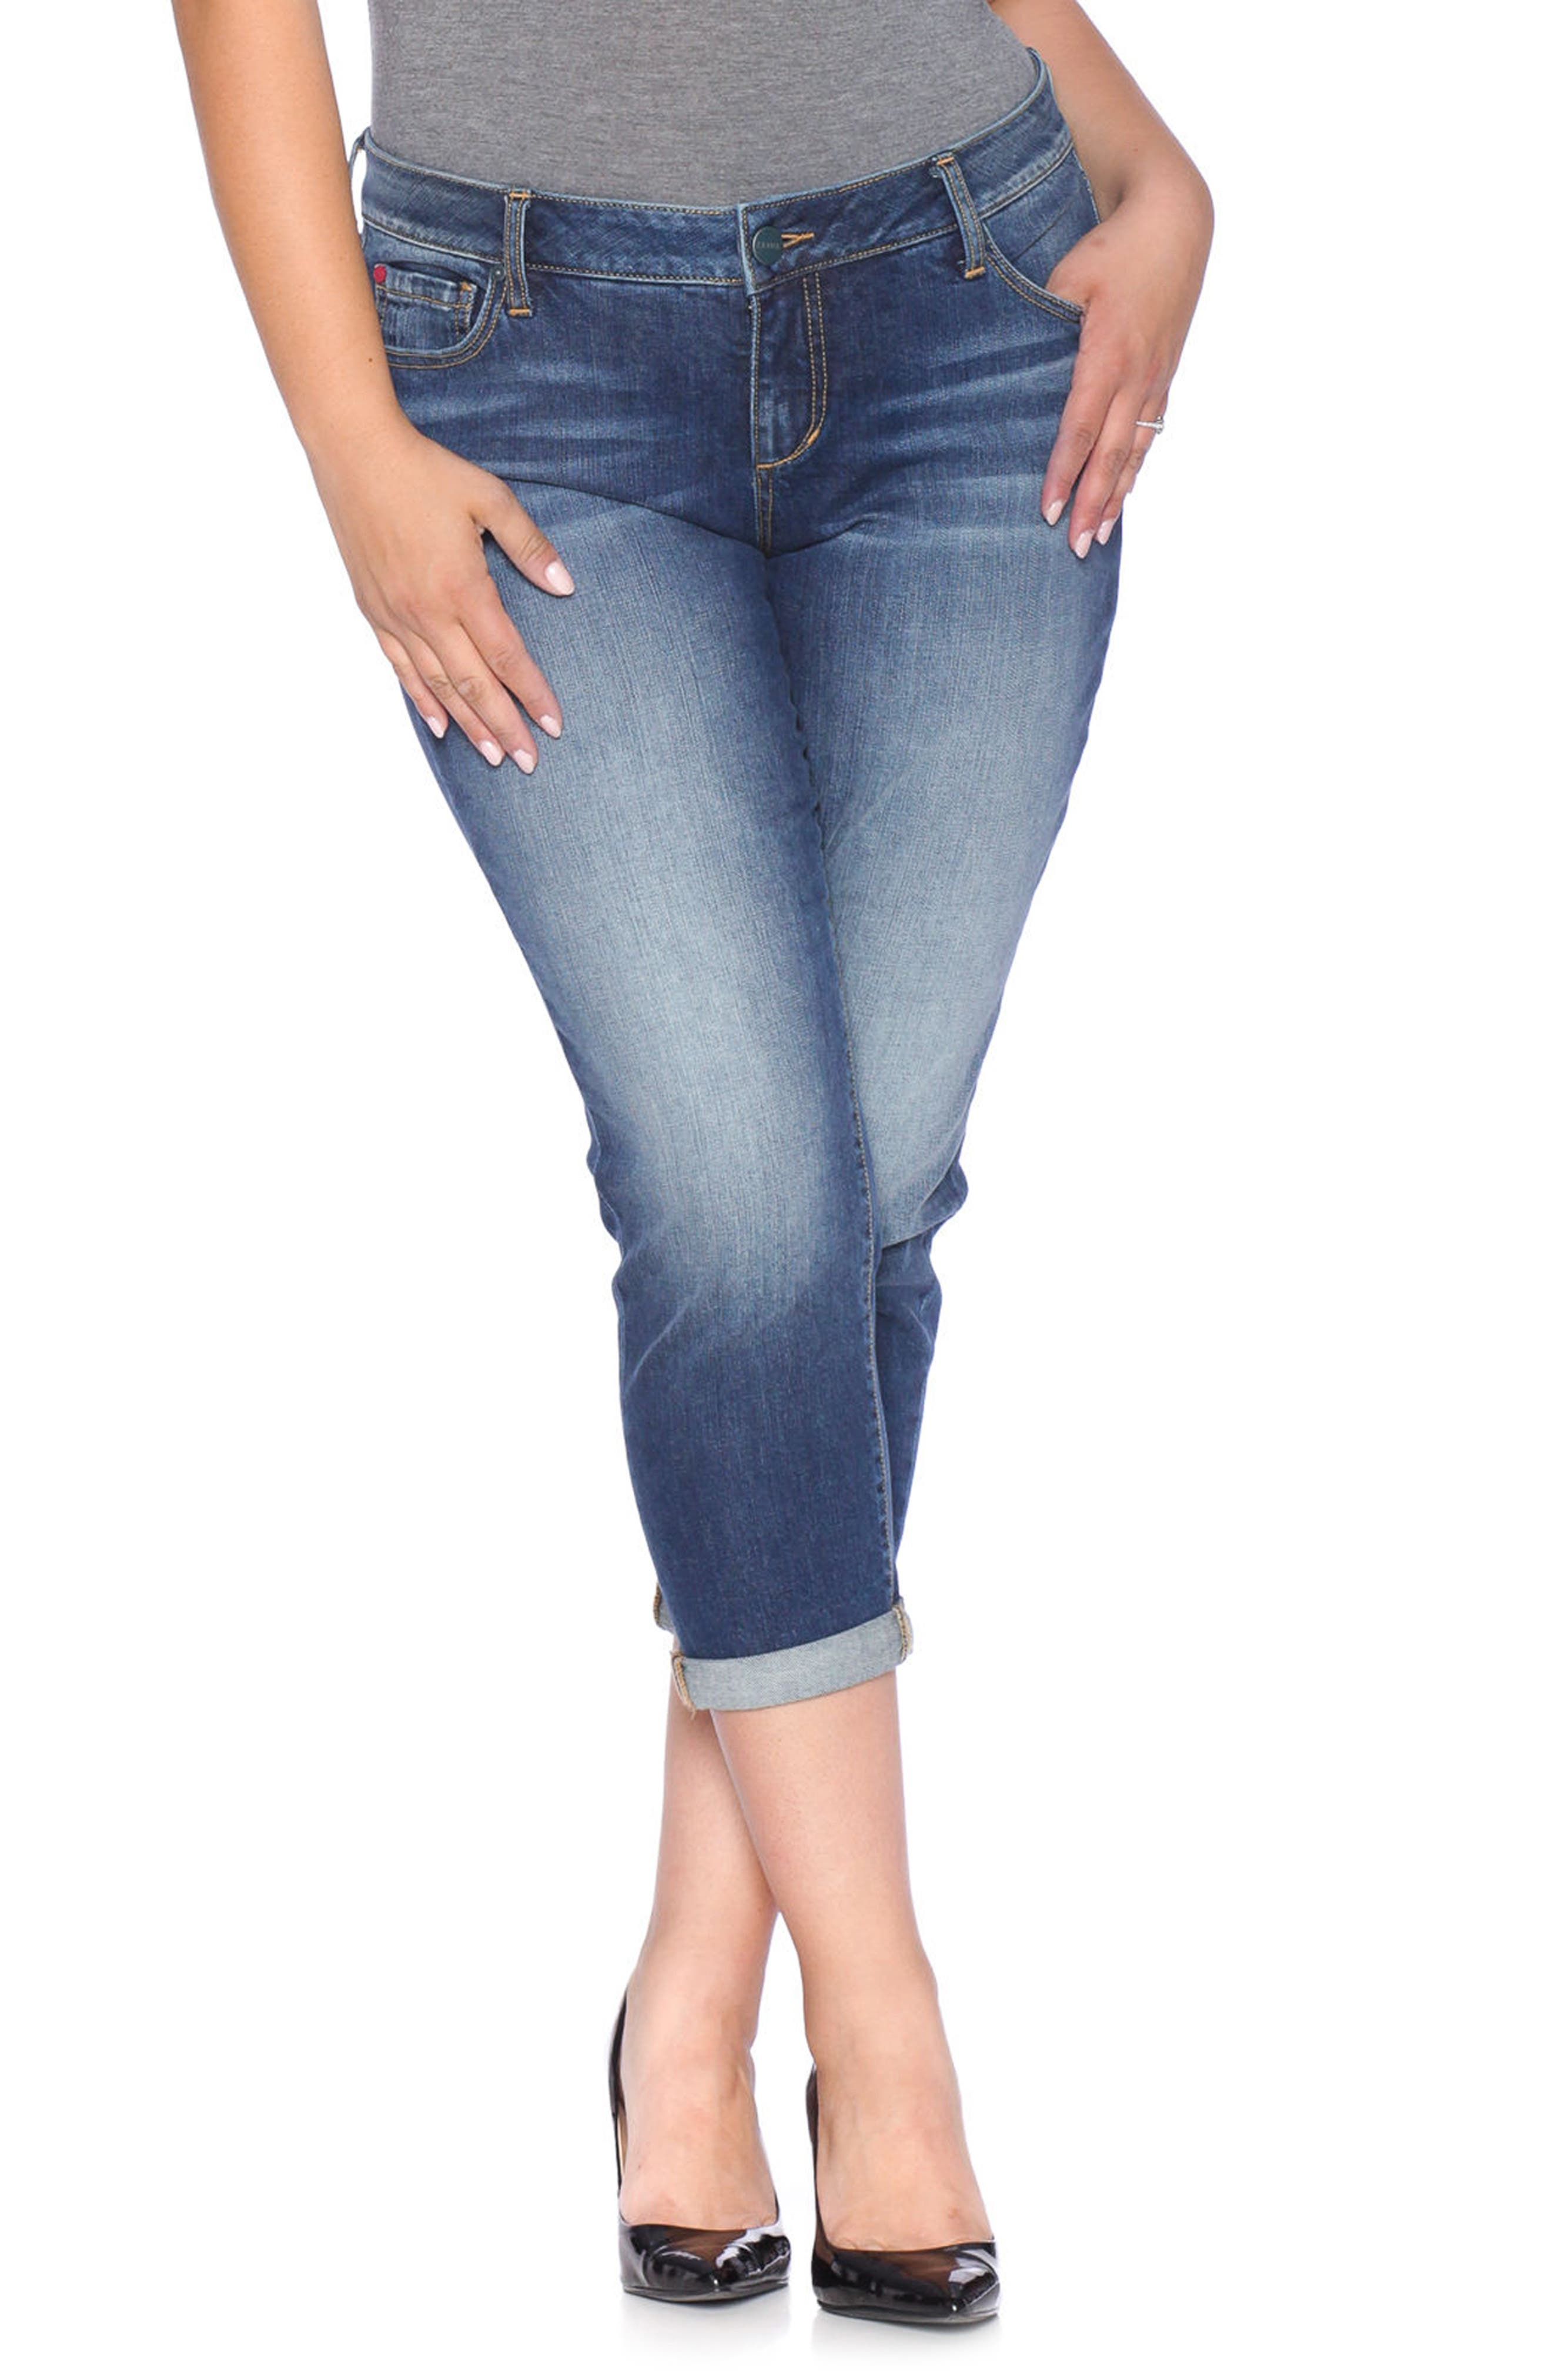 SLINK Jeans Easy Fit Mid-Rise Skinny Jeans (Val) (Plus Size)